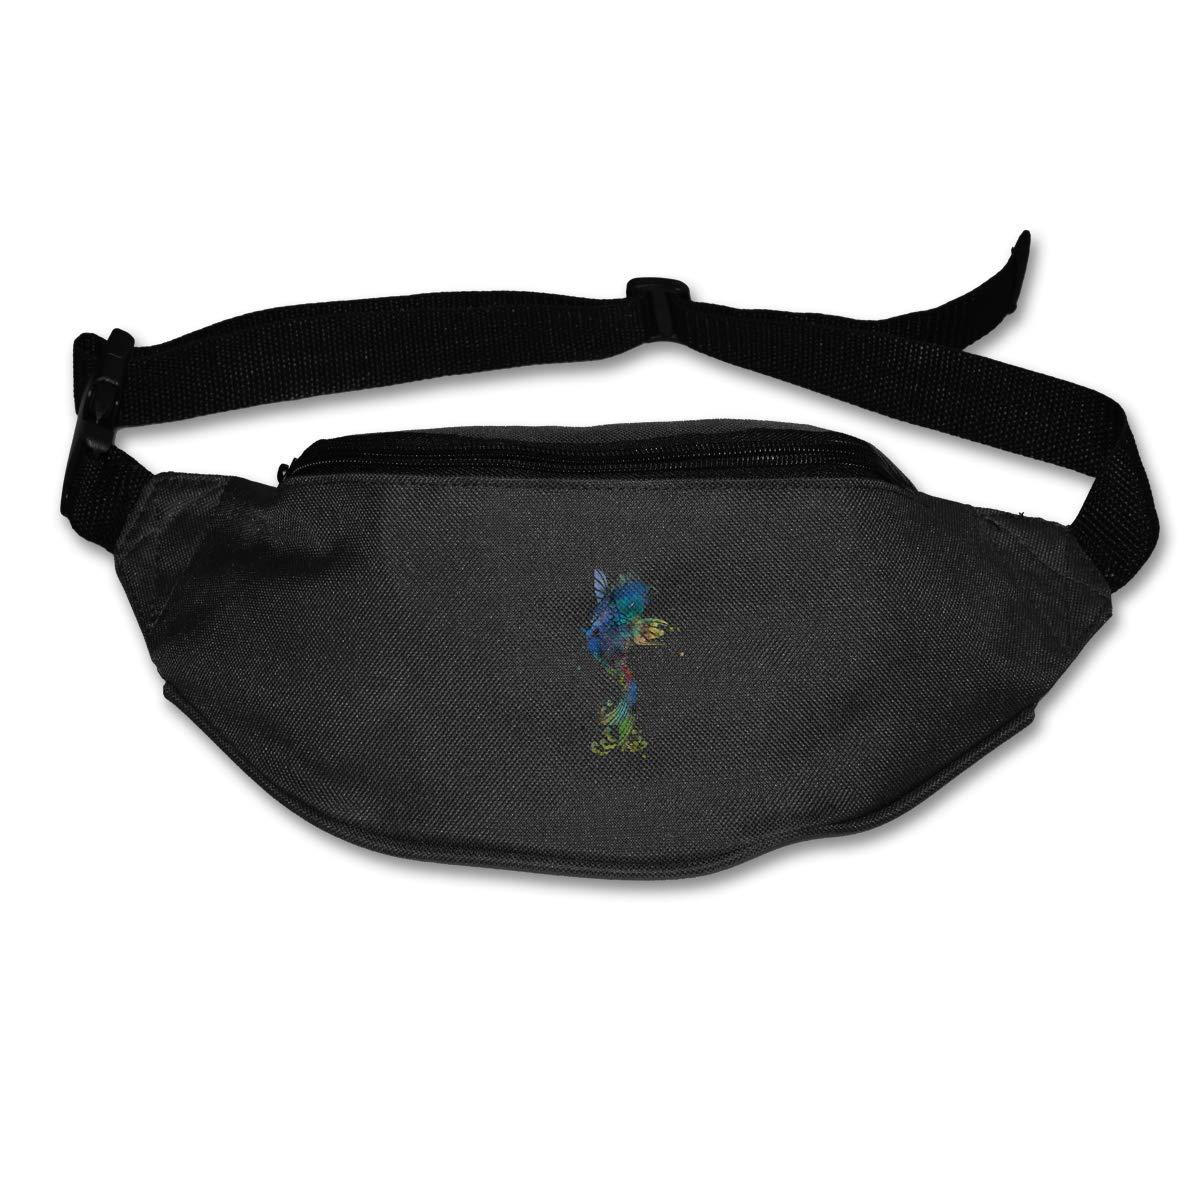 Pretty Koi Fish Sport Waist Bag Fanny Pack Adjustable For Run